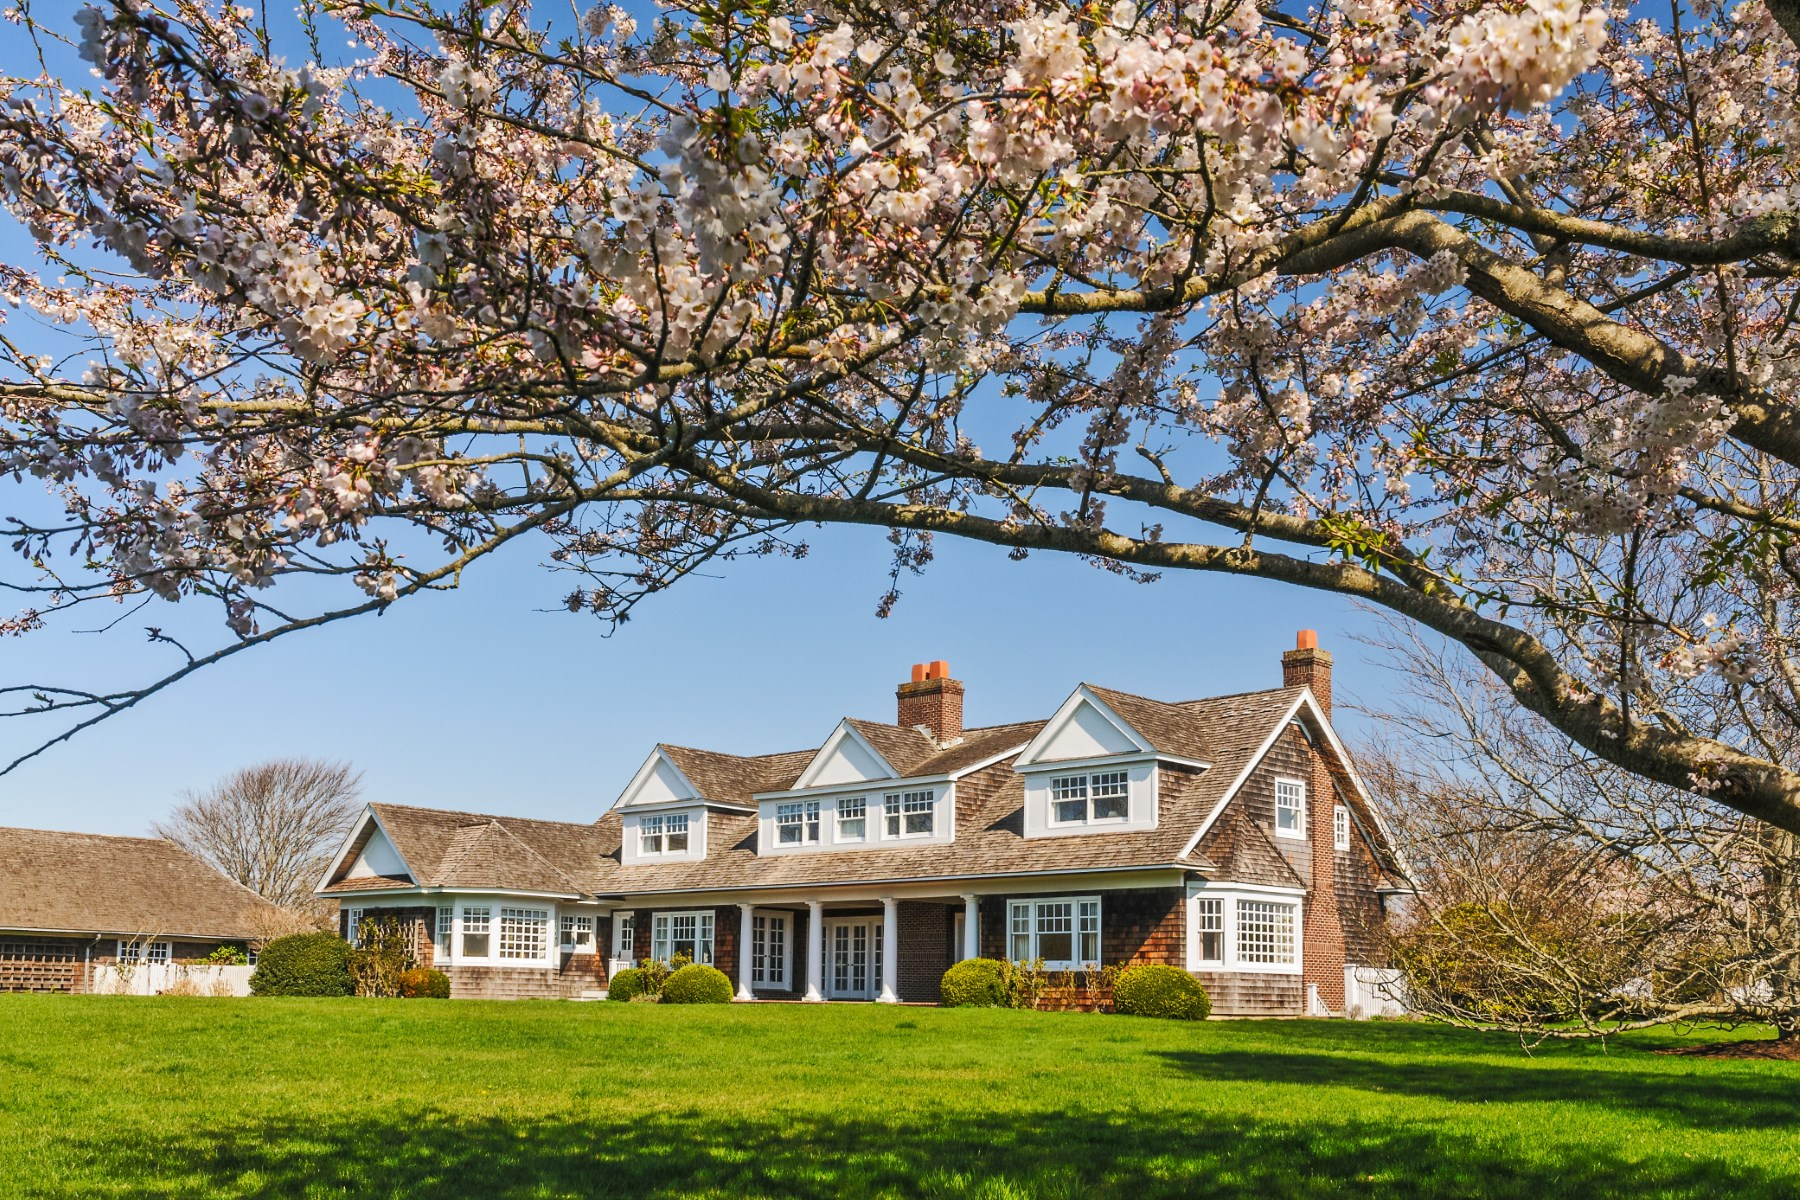 Single Family Home for Rent at Very Private Ocean Road Estate Bridgehampton South, Bridgehampton, New York, 11932 United States